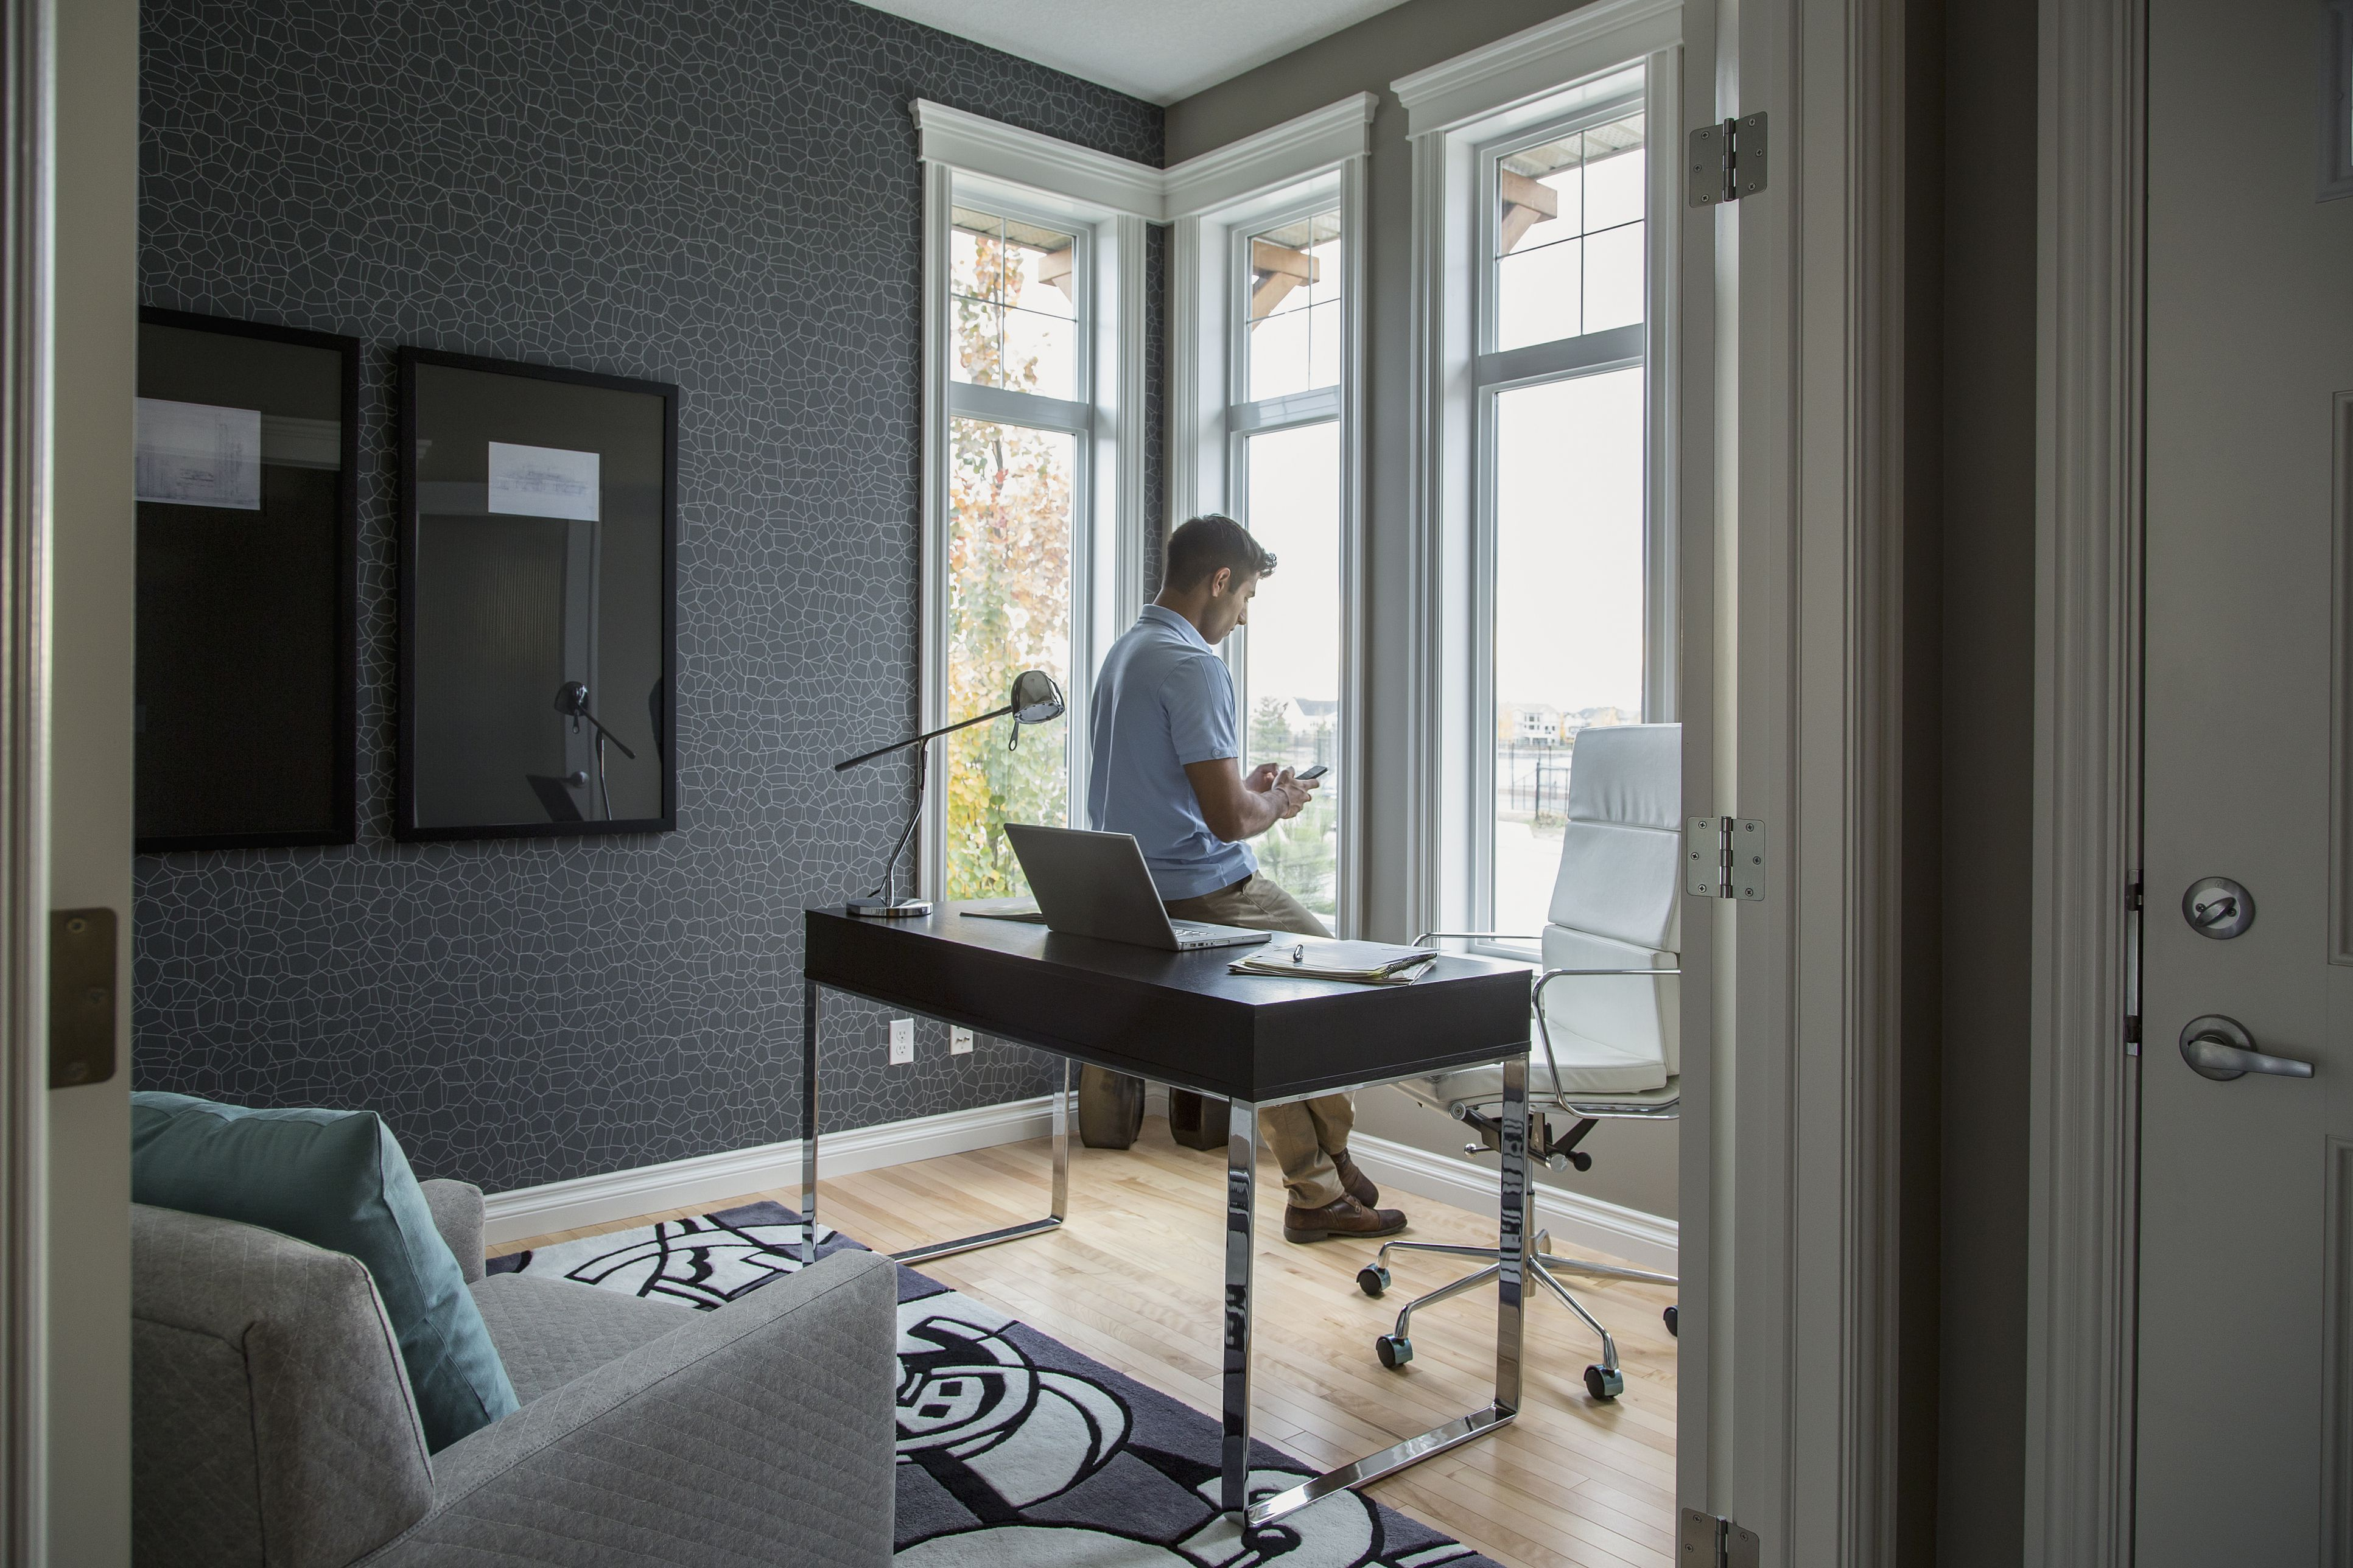 Man text messaging in home office